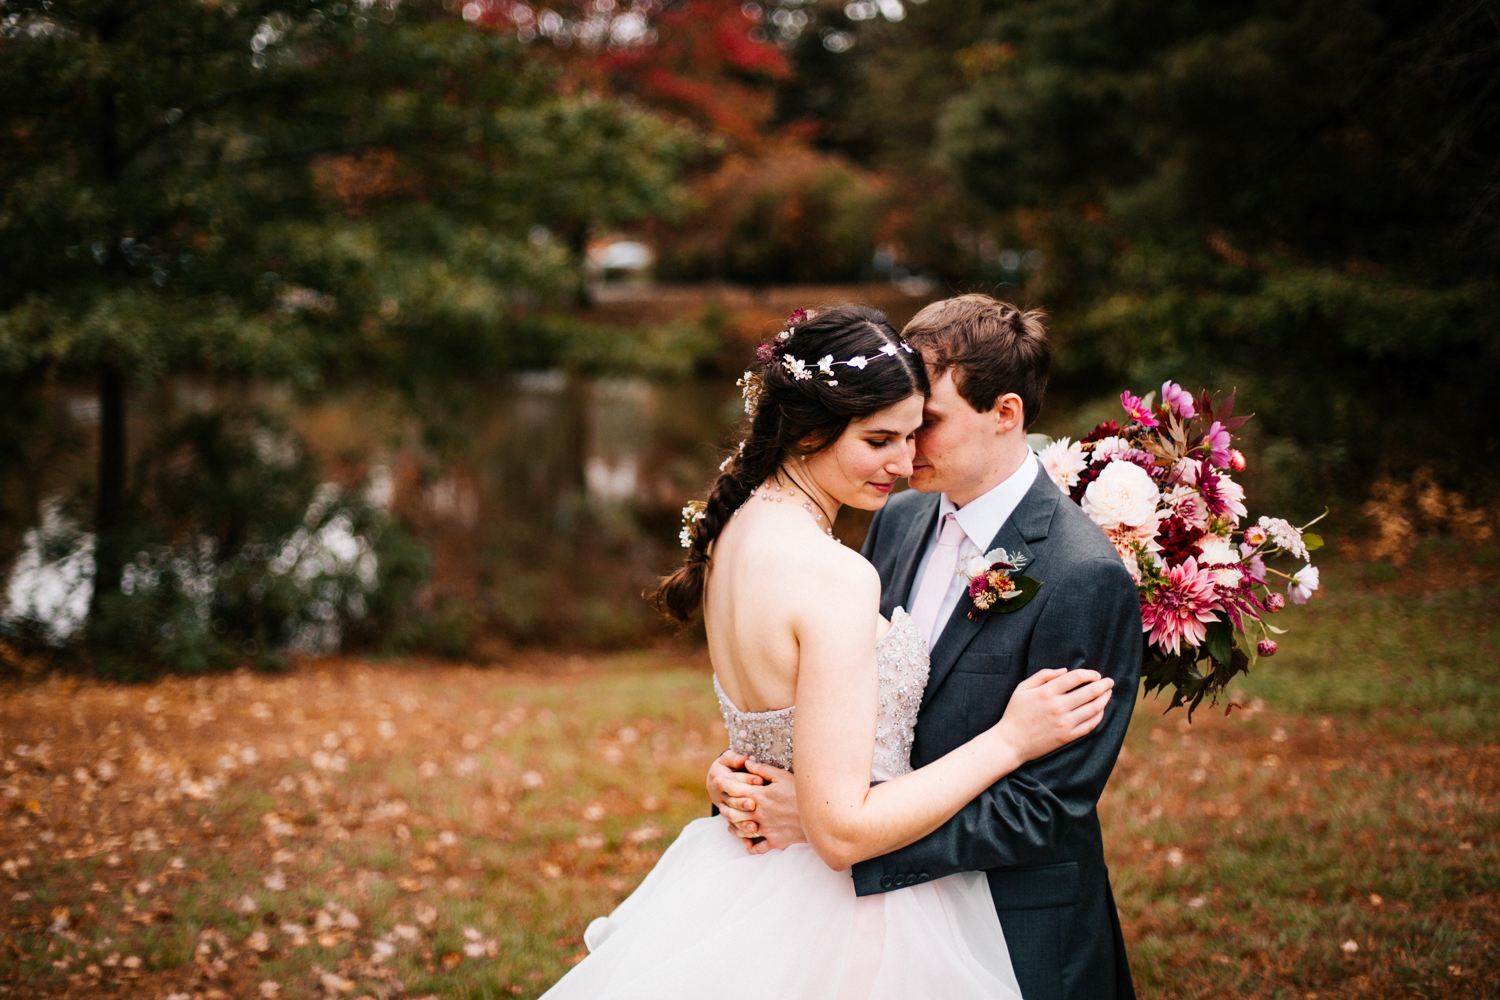 fall-autumn-wedding-boston-photographer-hartford-elizabeth-park-rose-garden-wedding-new-england.jpg